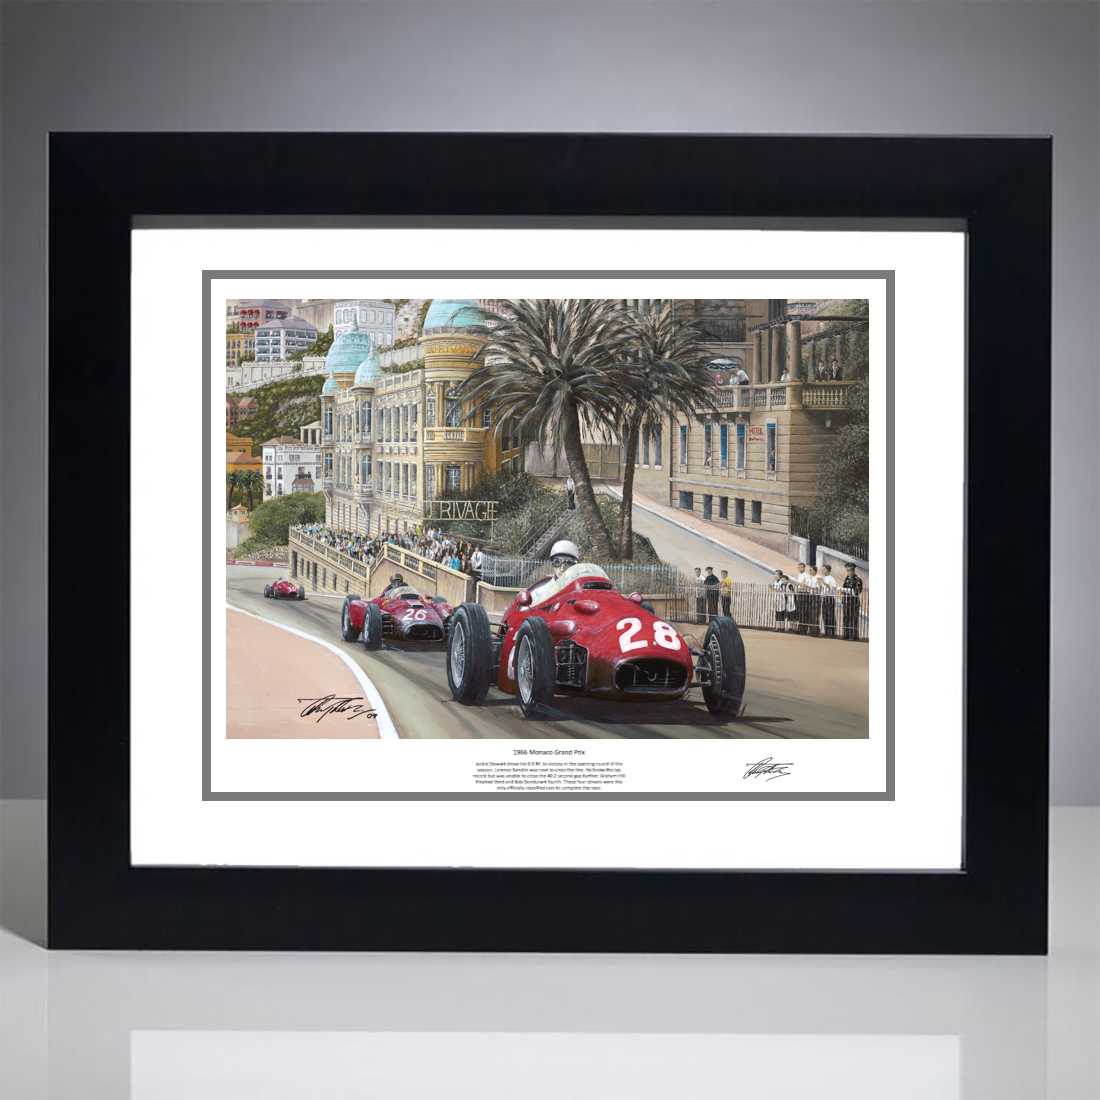 1956 Monaco Grand Prix Print - Signed by the Artist